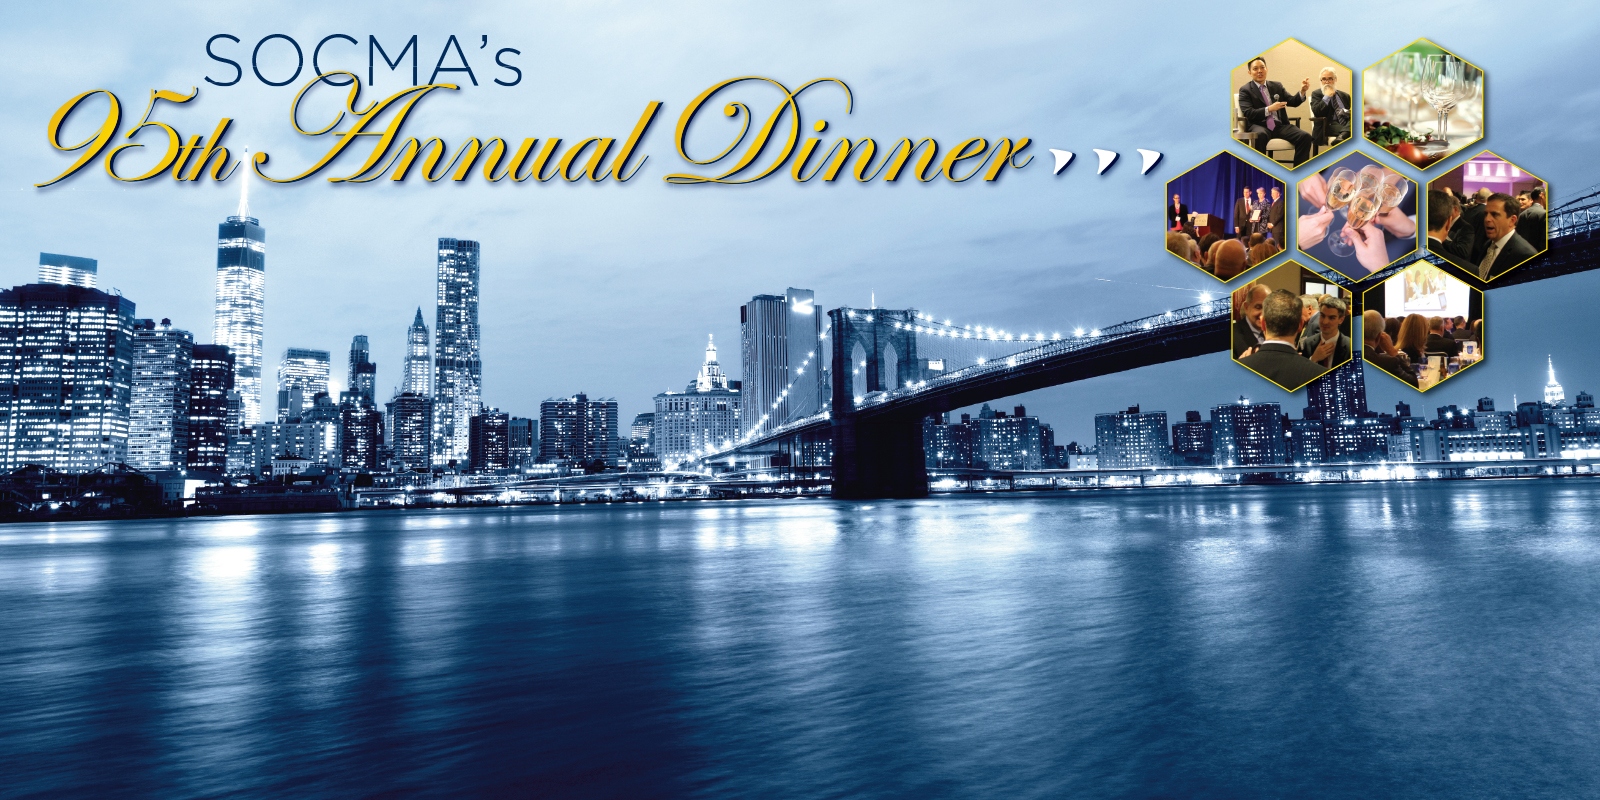 SOCMA's 95th Annual Dinner